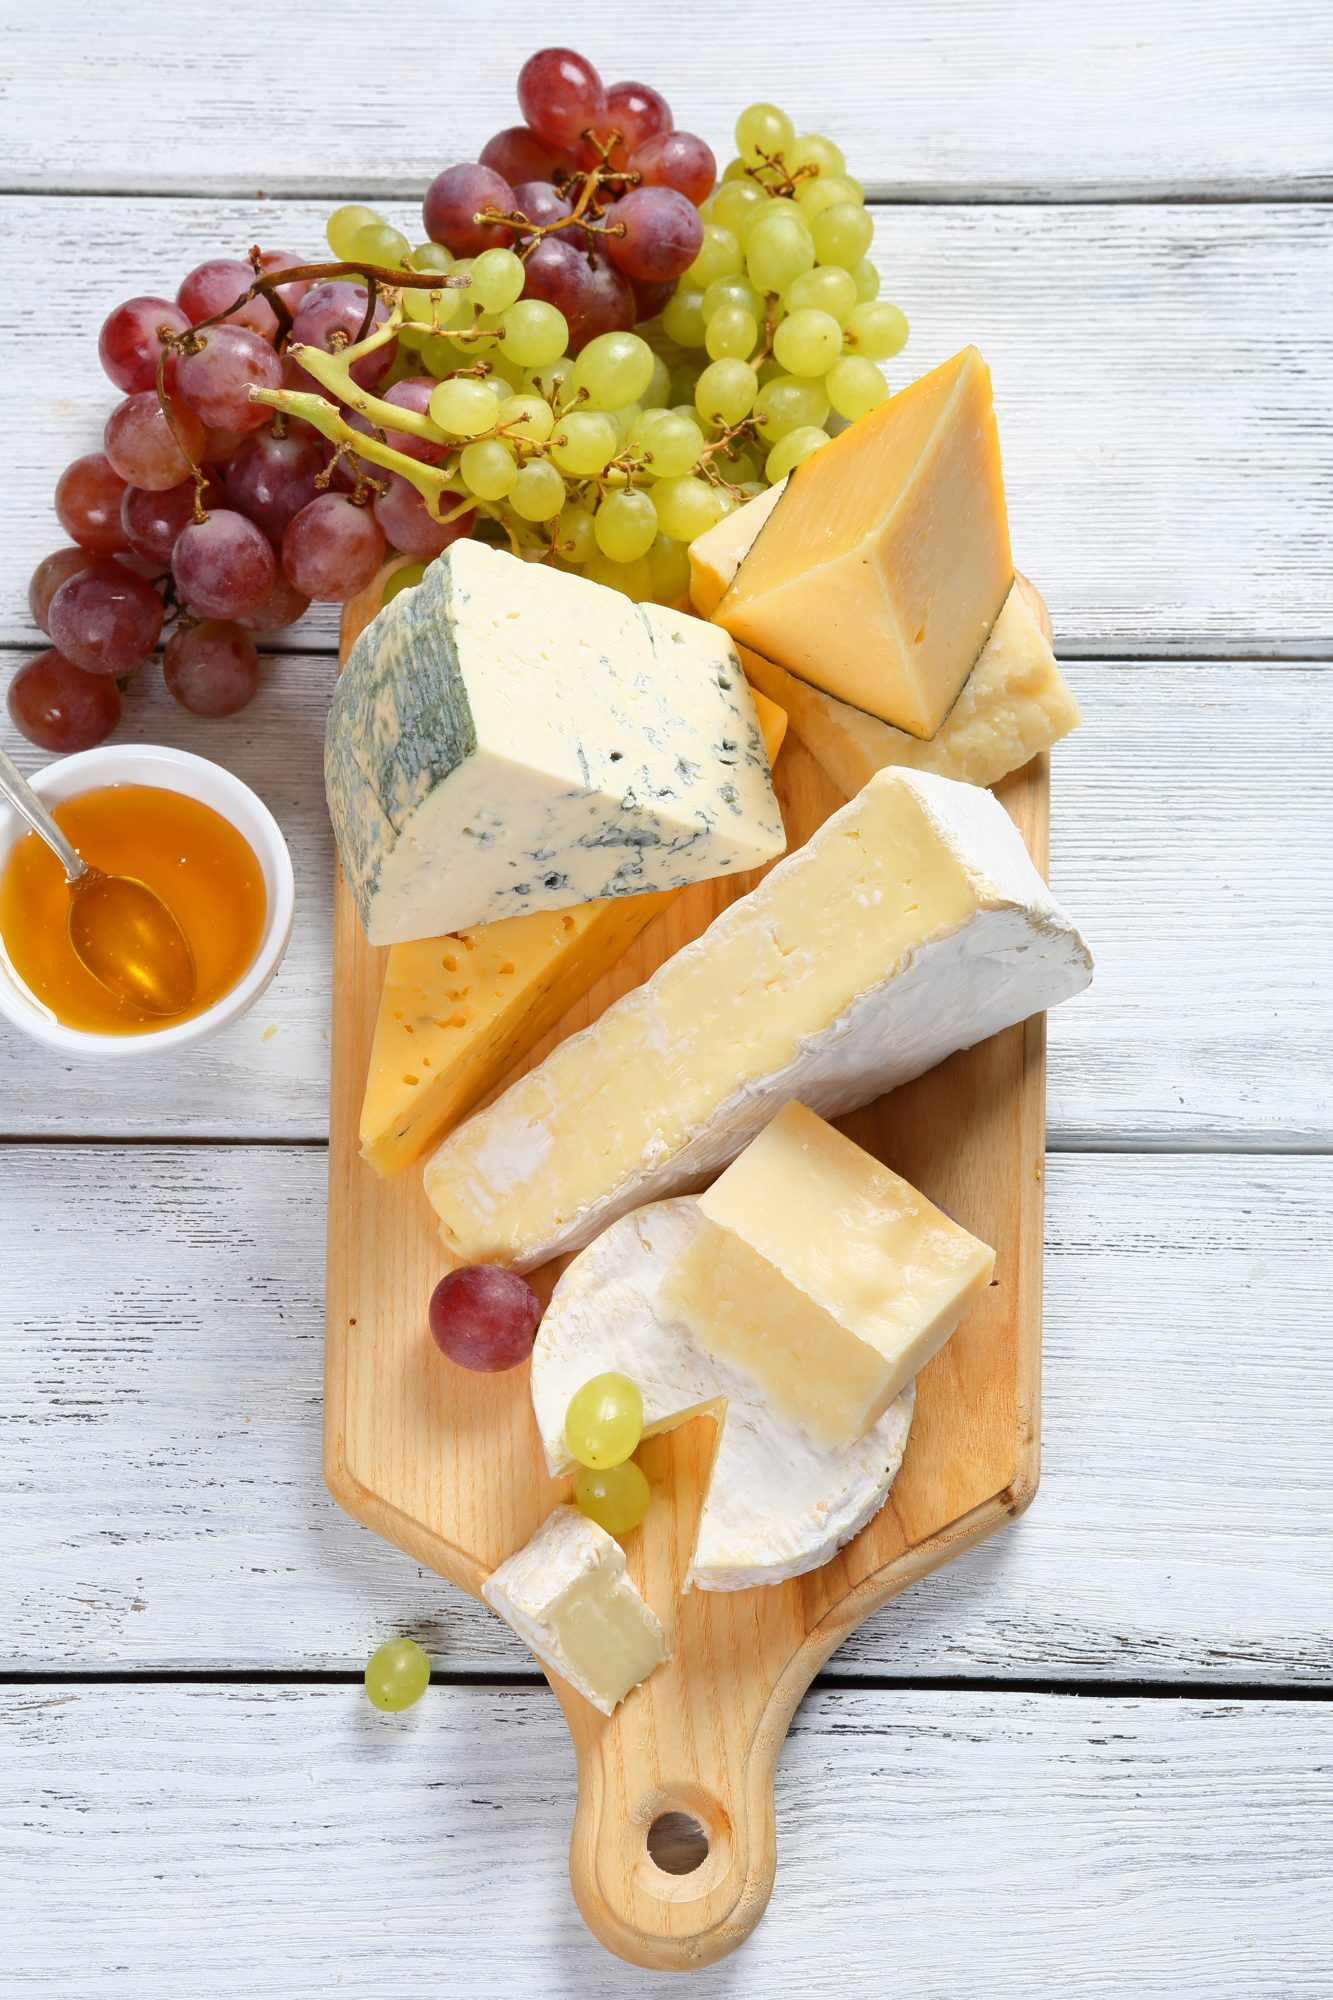 Cheese board with multiple cheese varieties